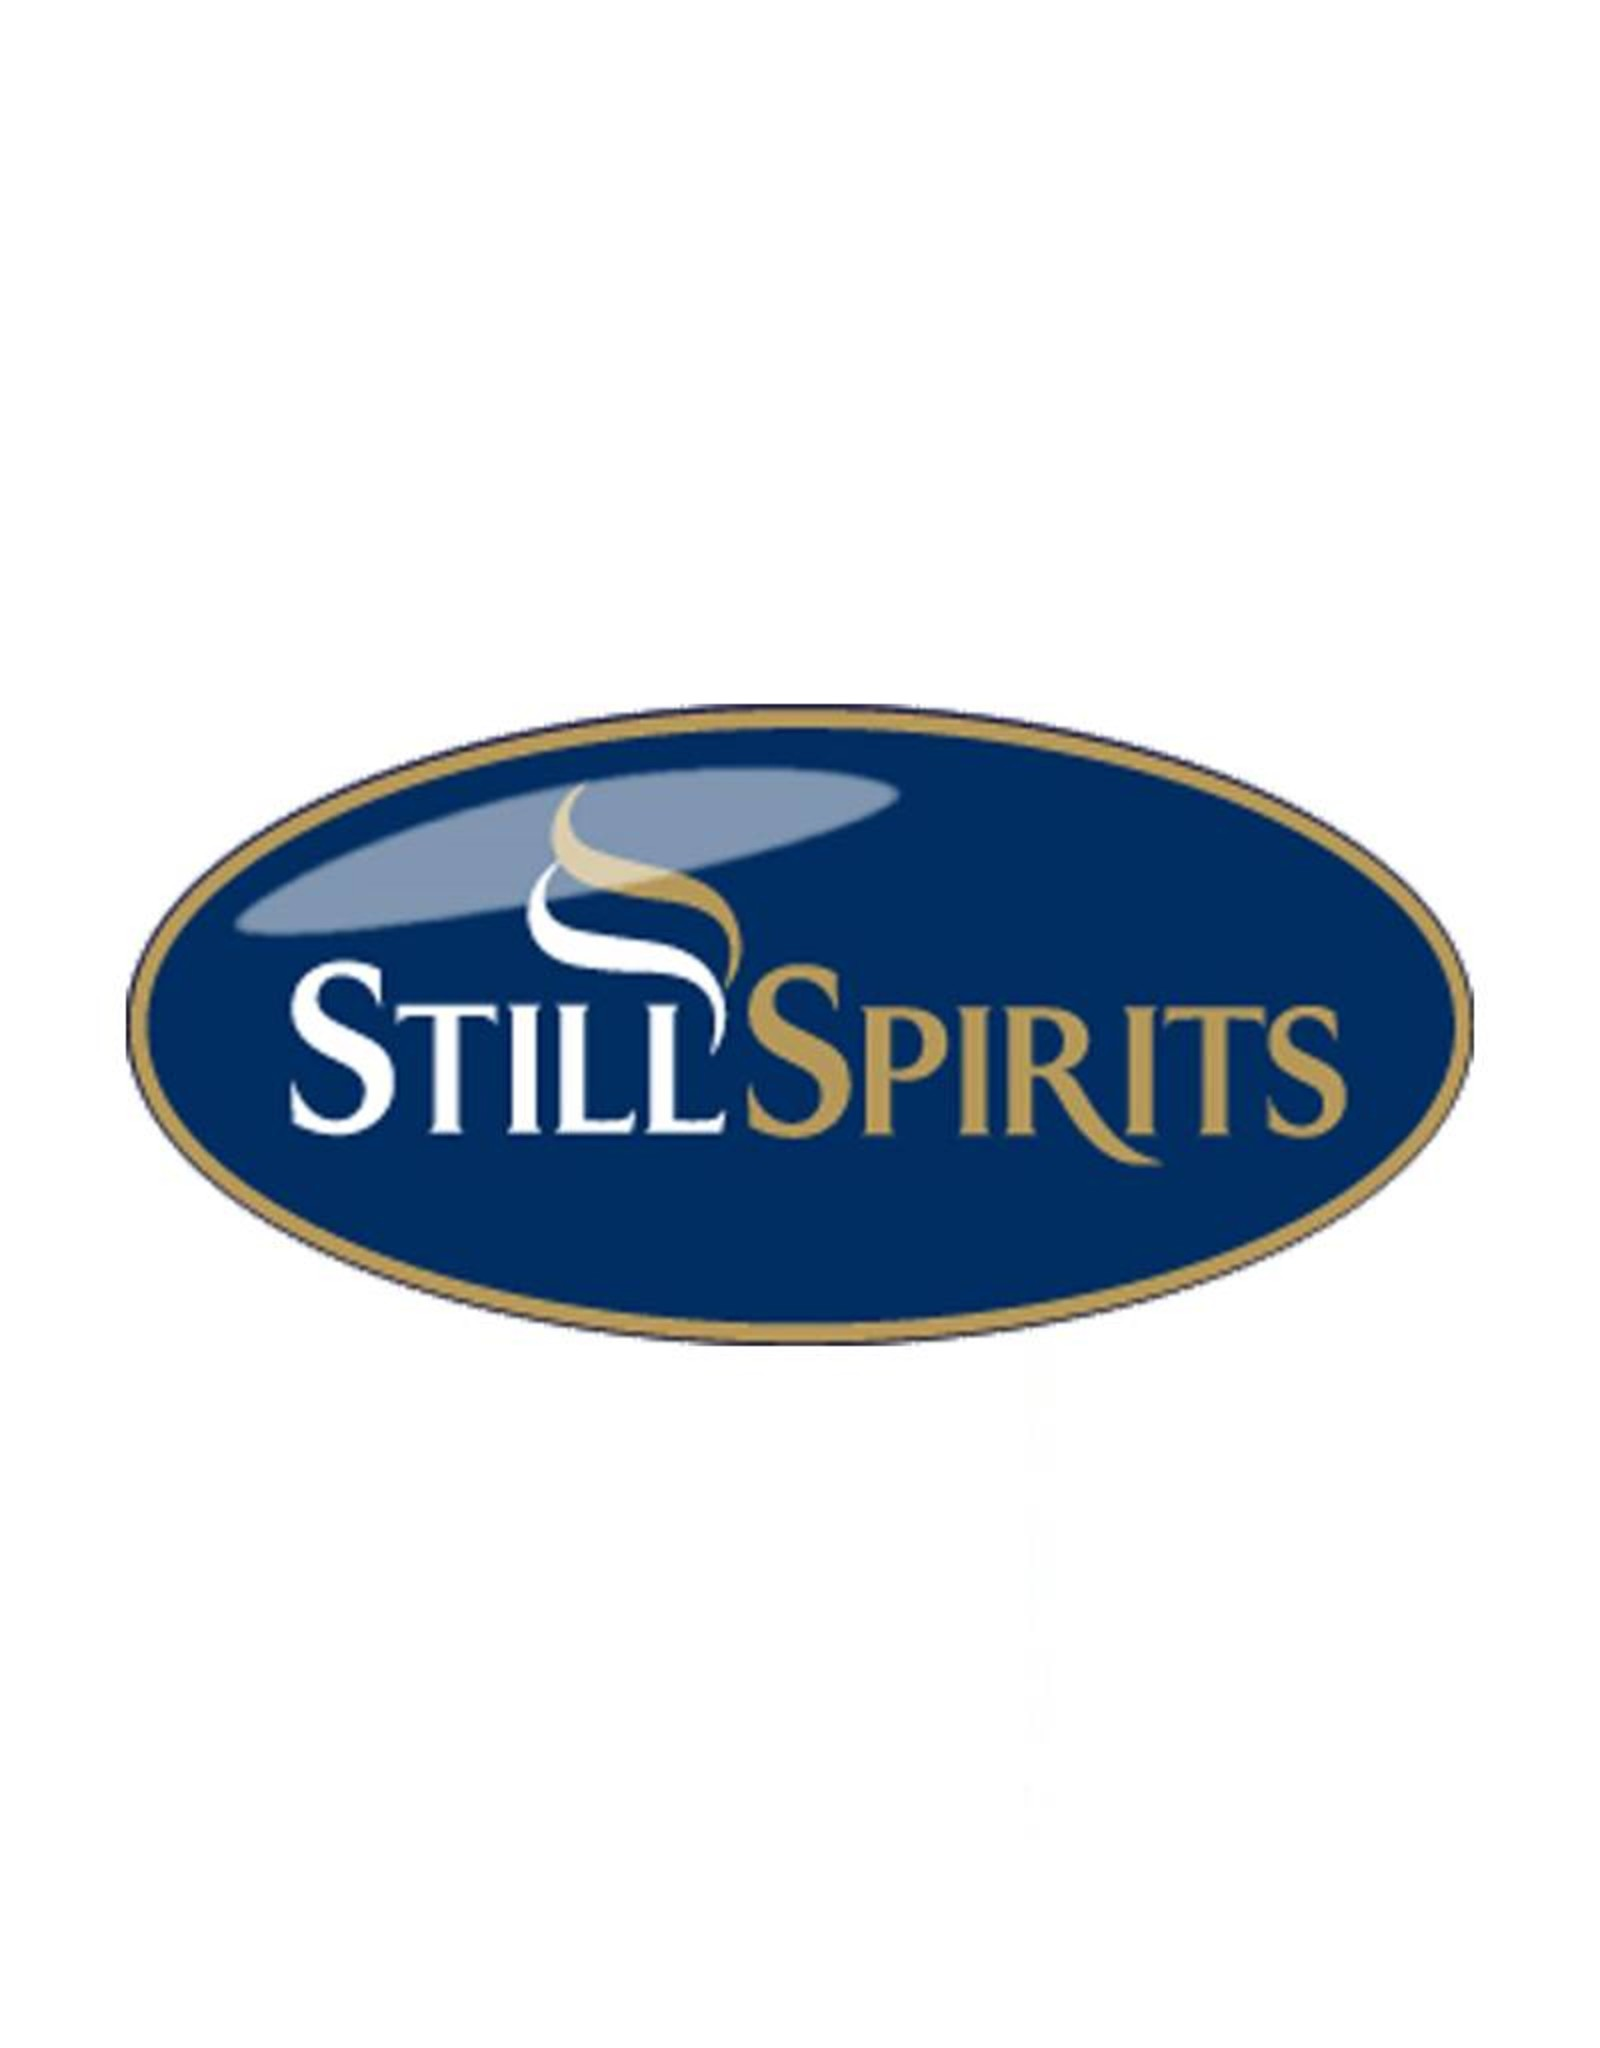 Still Spirits Stainless Steel Condenser